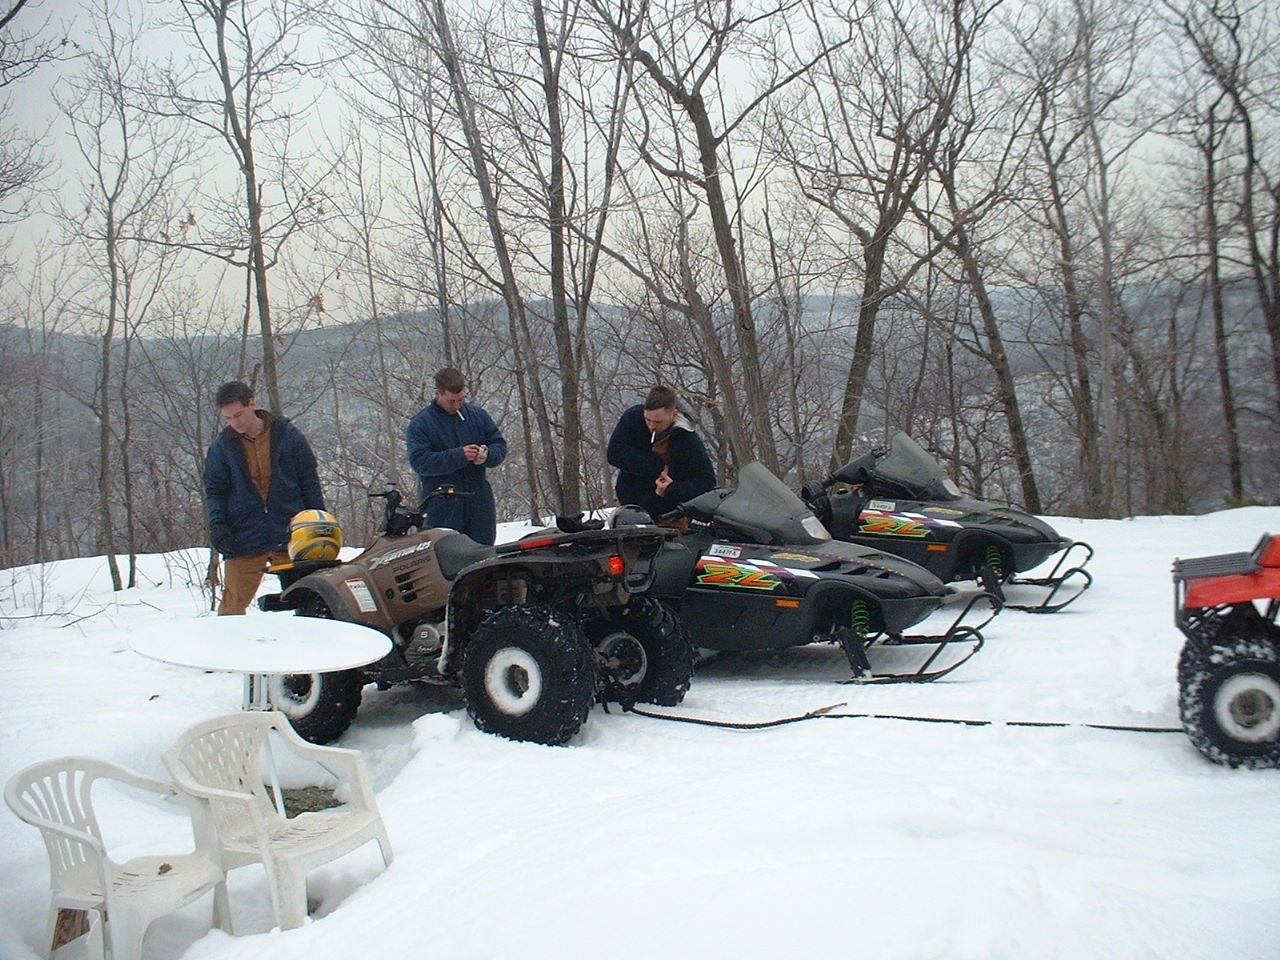 Sleds and ATVs can be friends!